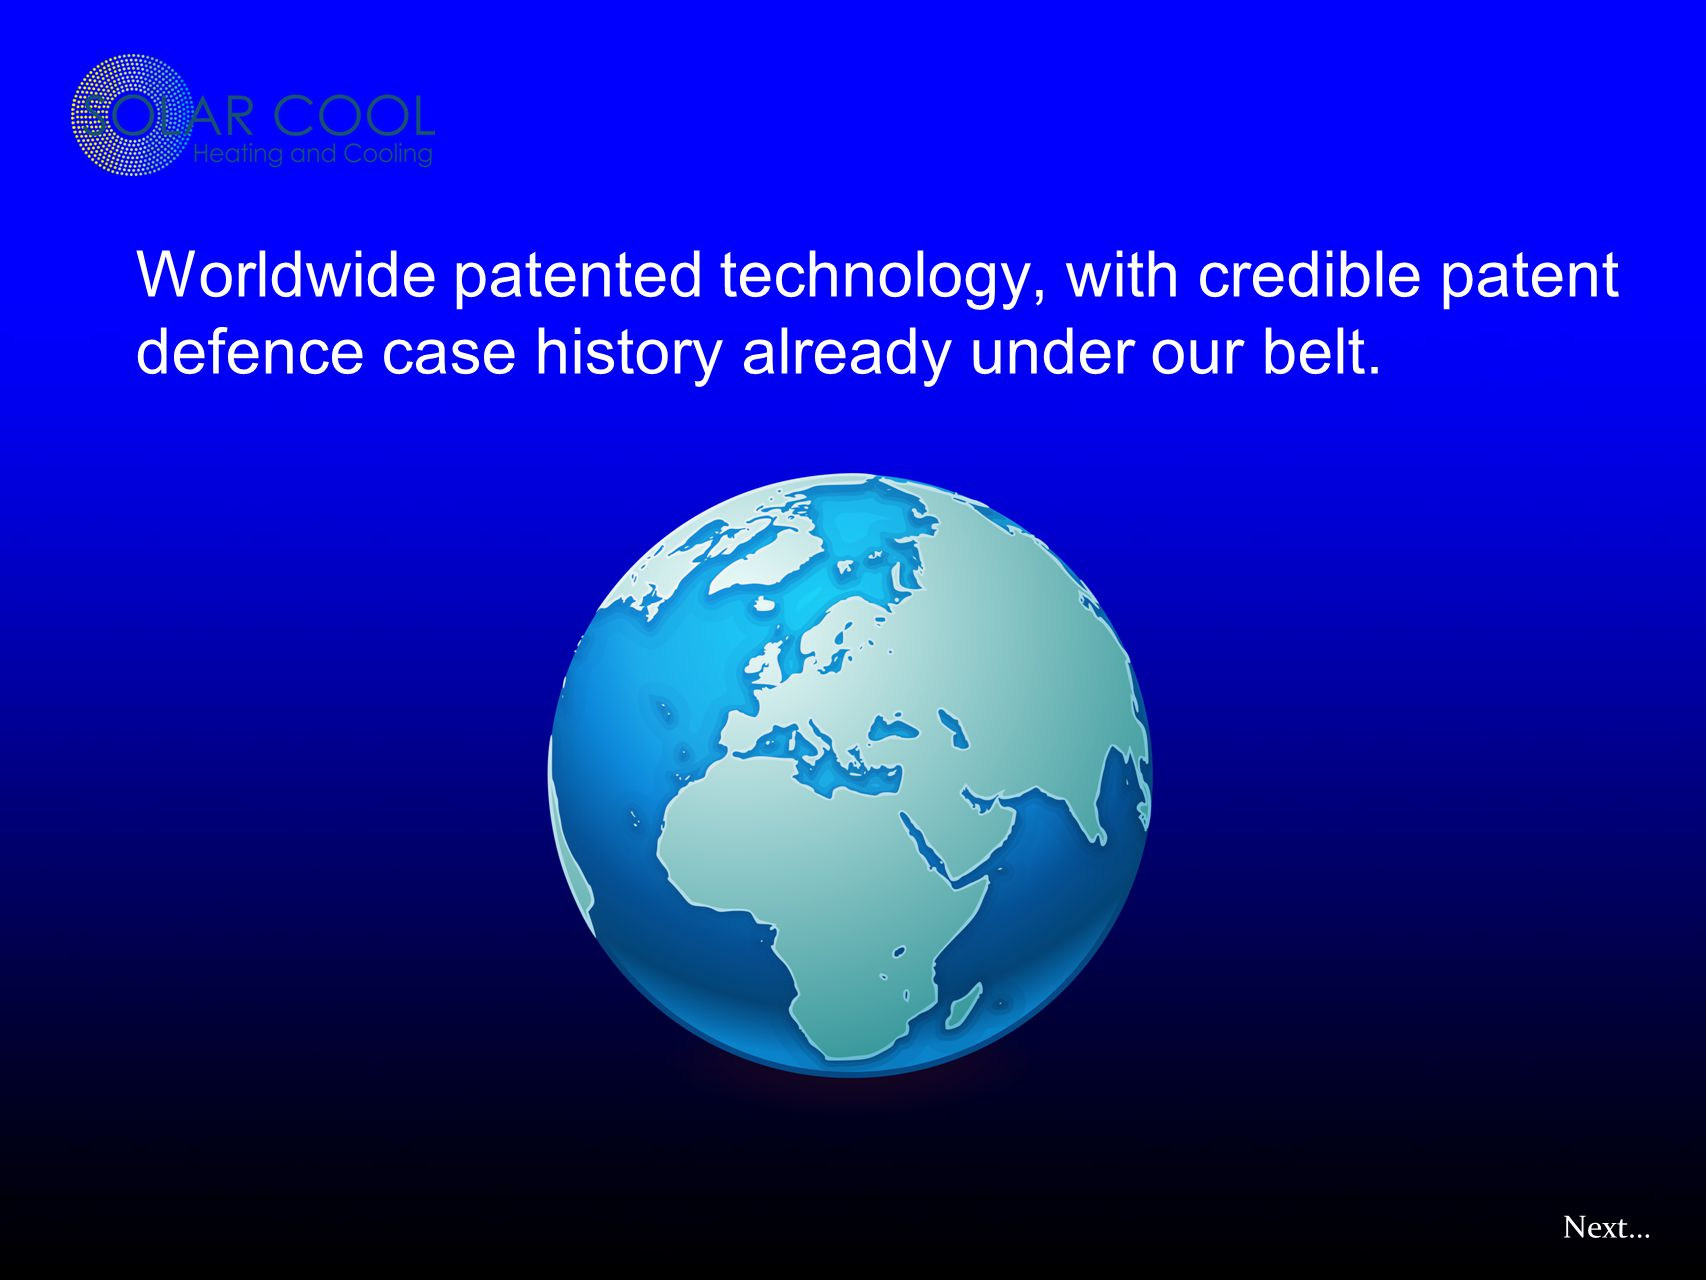 Worldwide patented technology, with credible patent defence case history already under our belt.